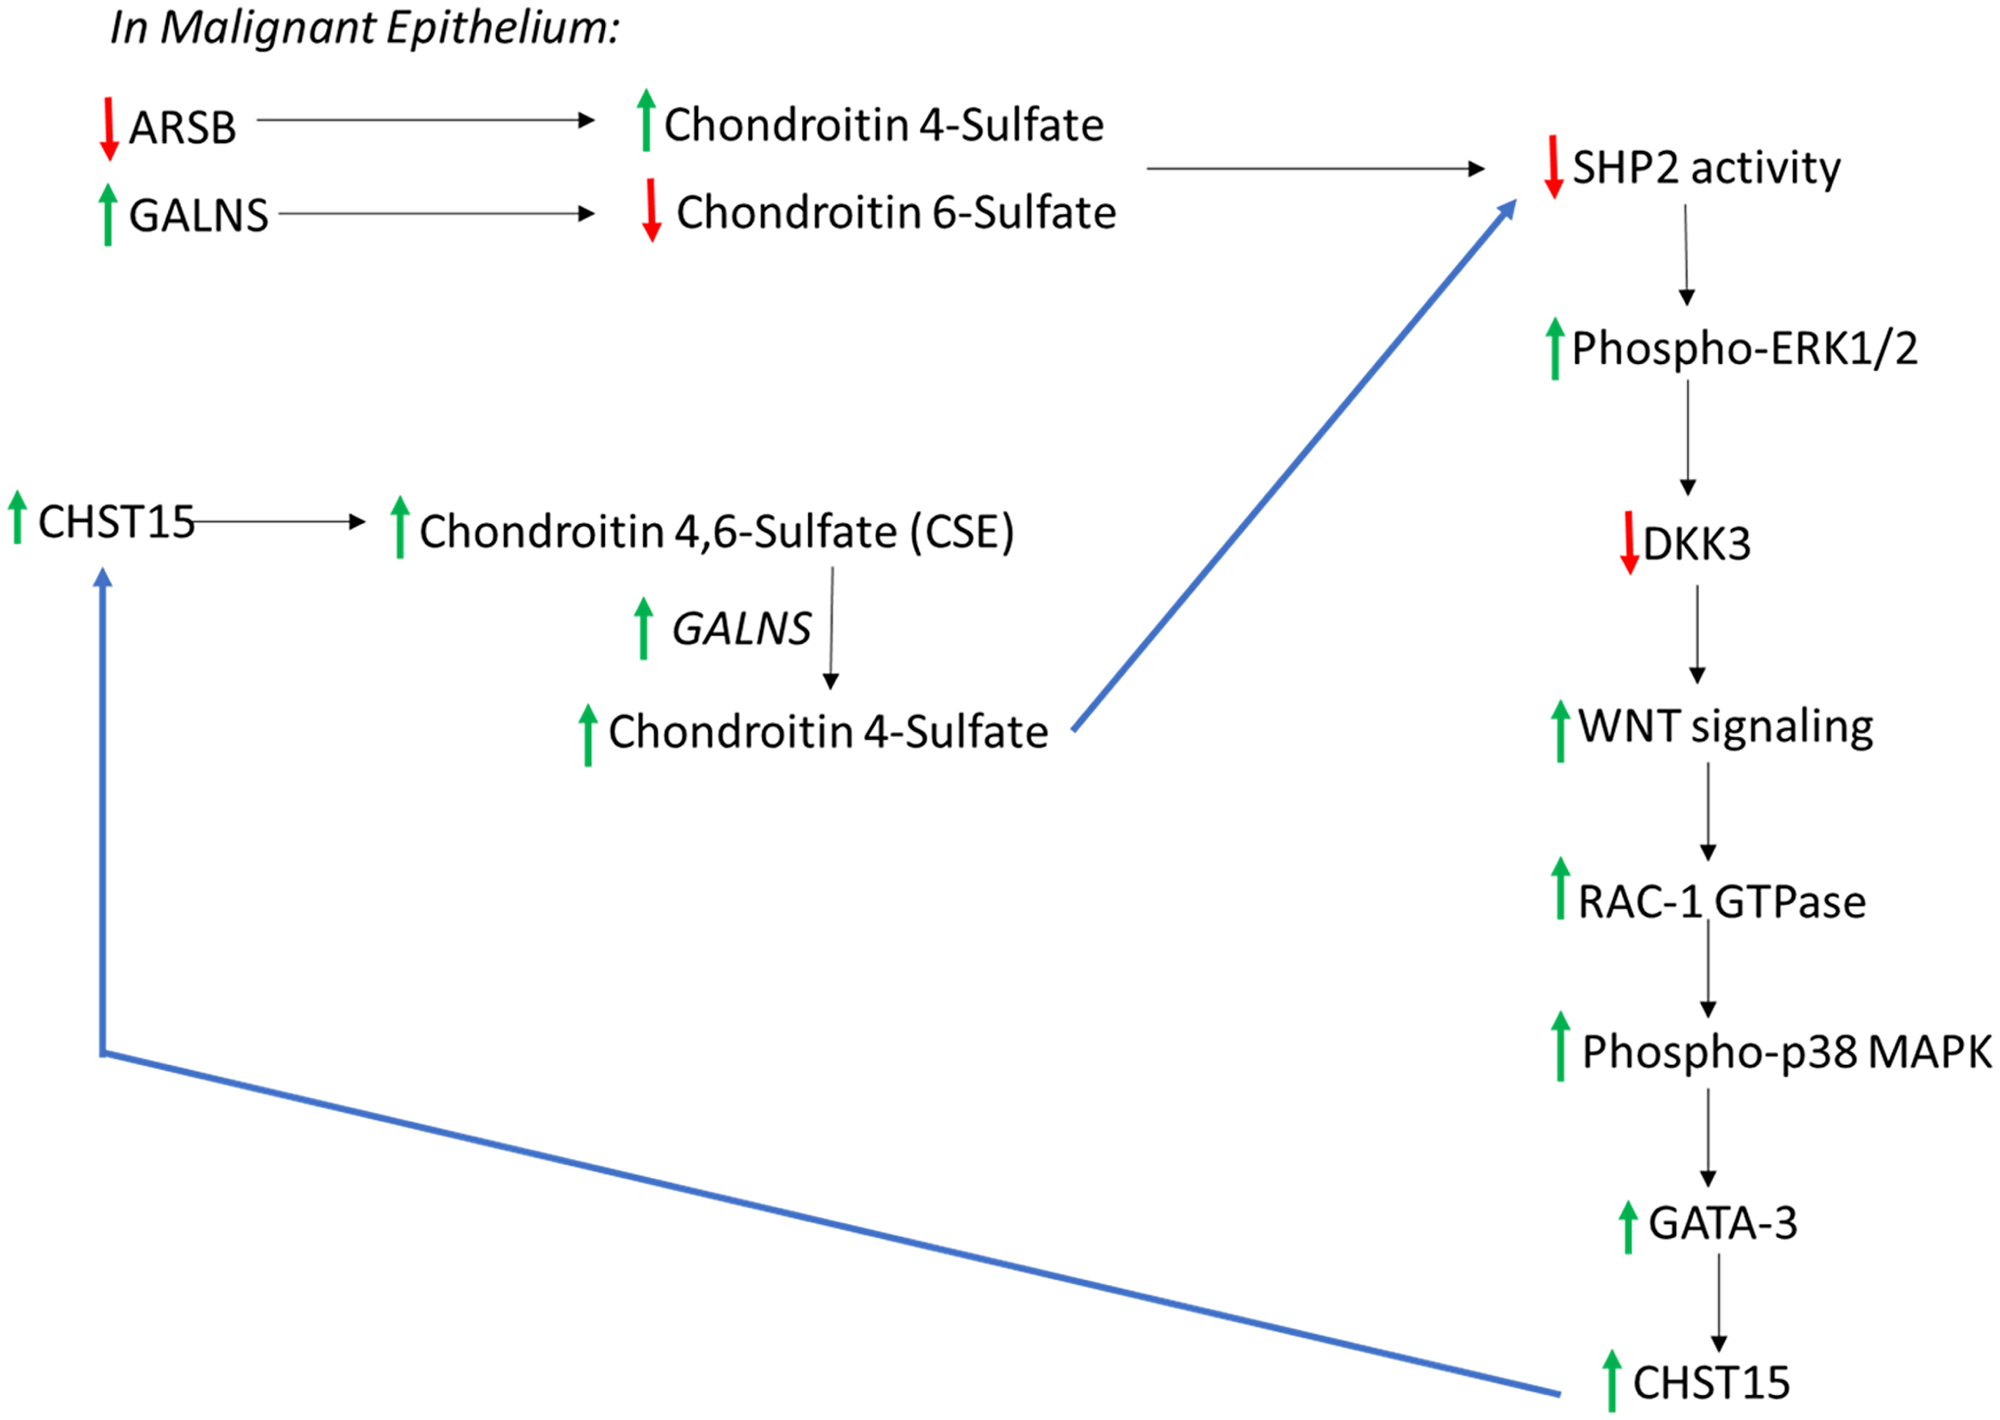 Overall connected pathways of chondroitin 4-sulfate (C4S), chondroitin-4,6-disulfate (CSE), ARSB, and GALNS which may contribute to EMT and progressive increase in SHP2 inhibition.